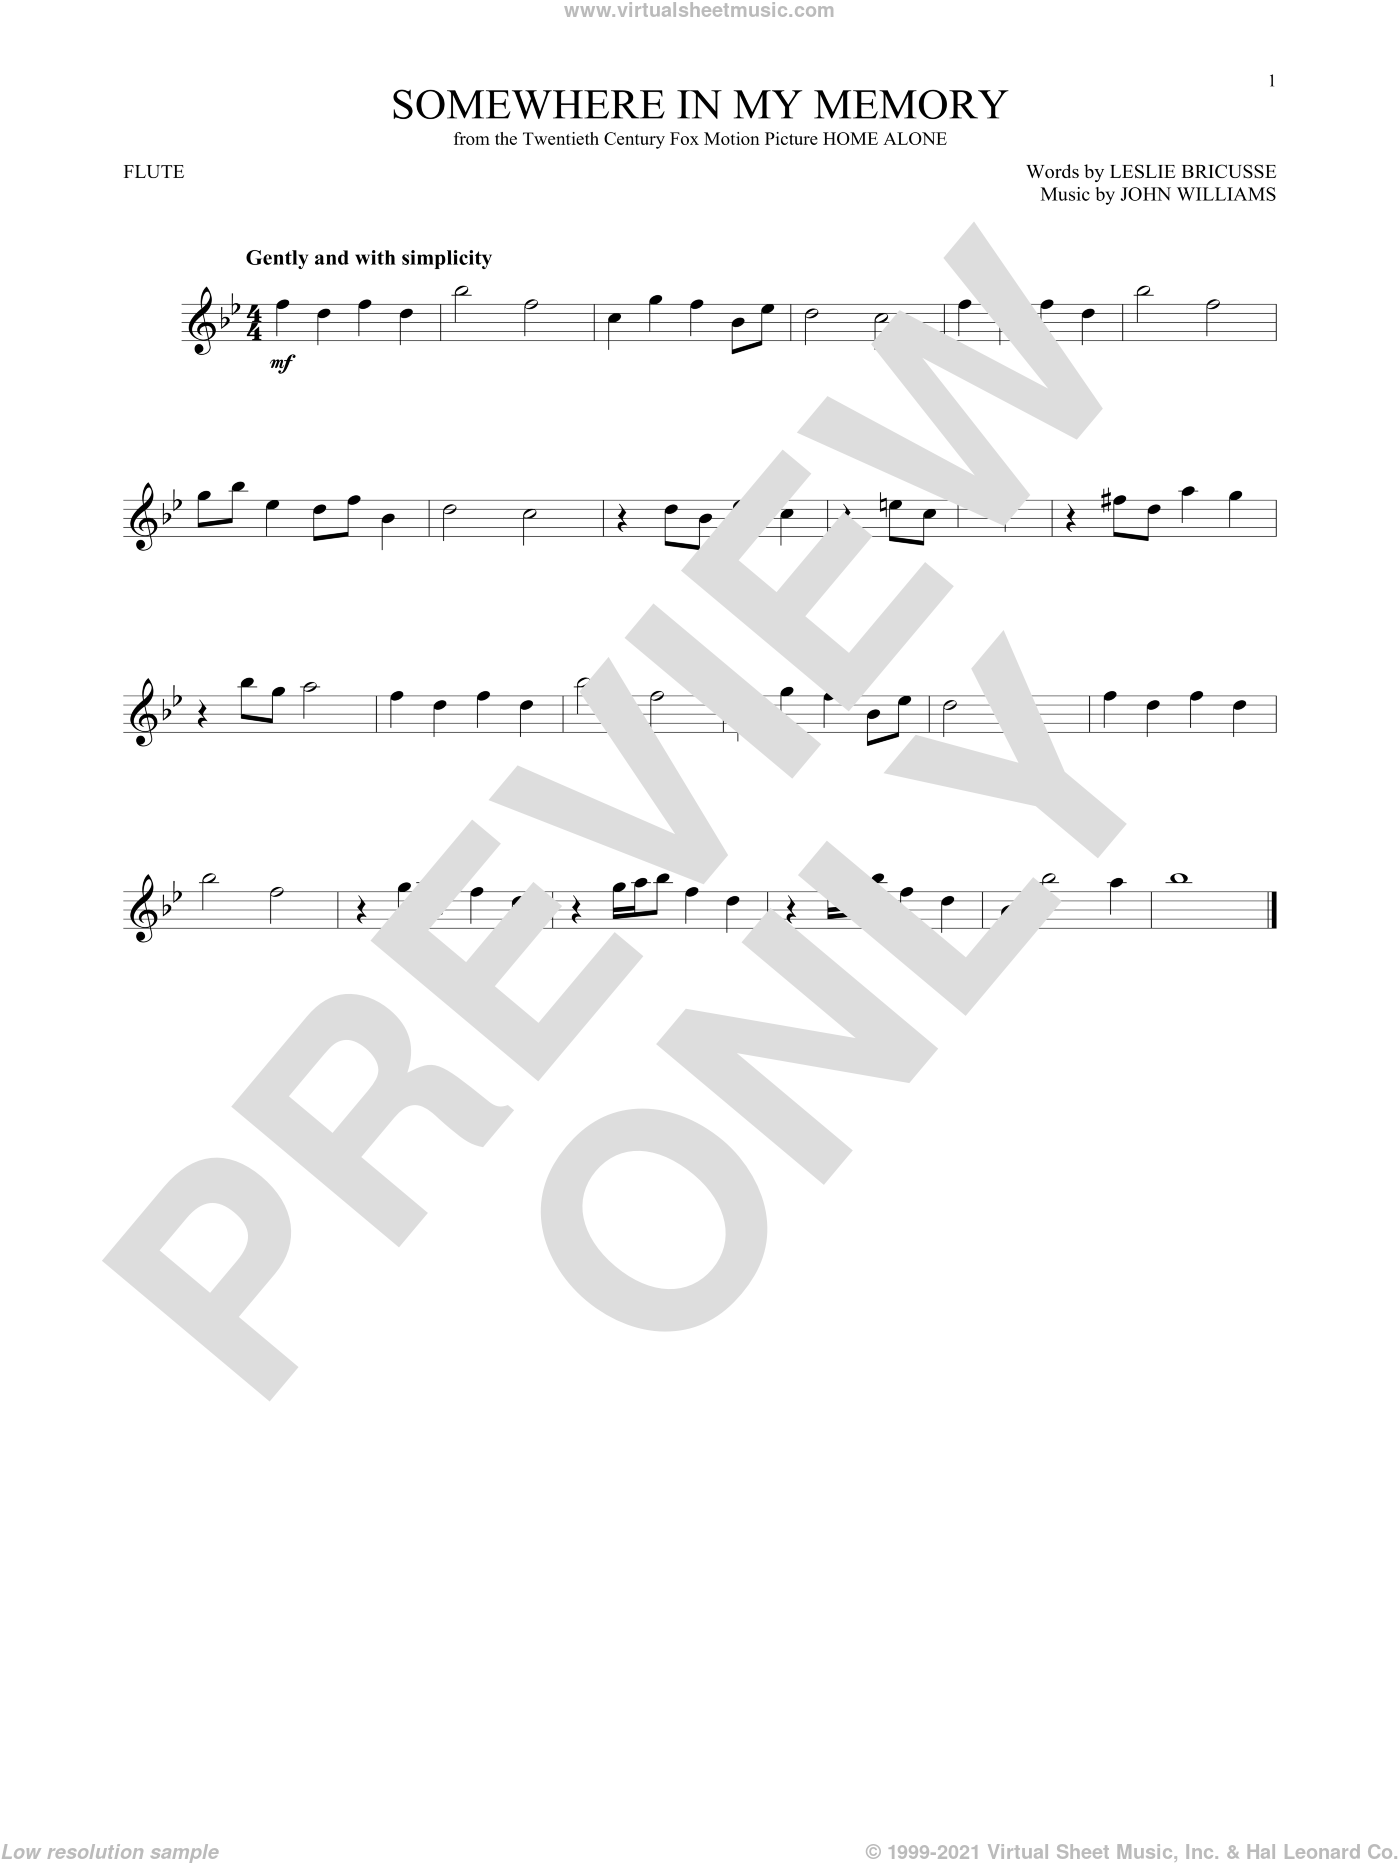 Somewhere In My Memory sheet music for flute solo by John Williams and Leslie Bricusse, intermediate skill level